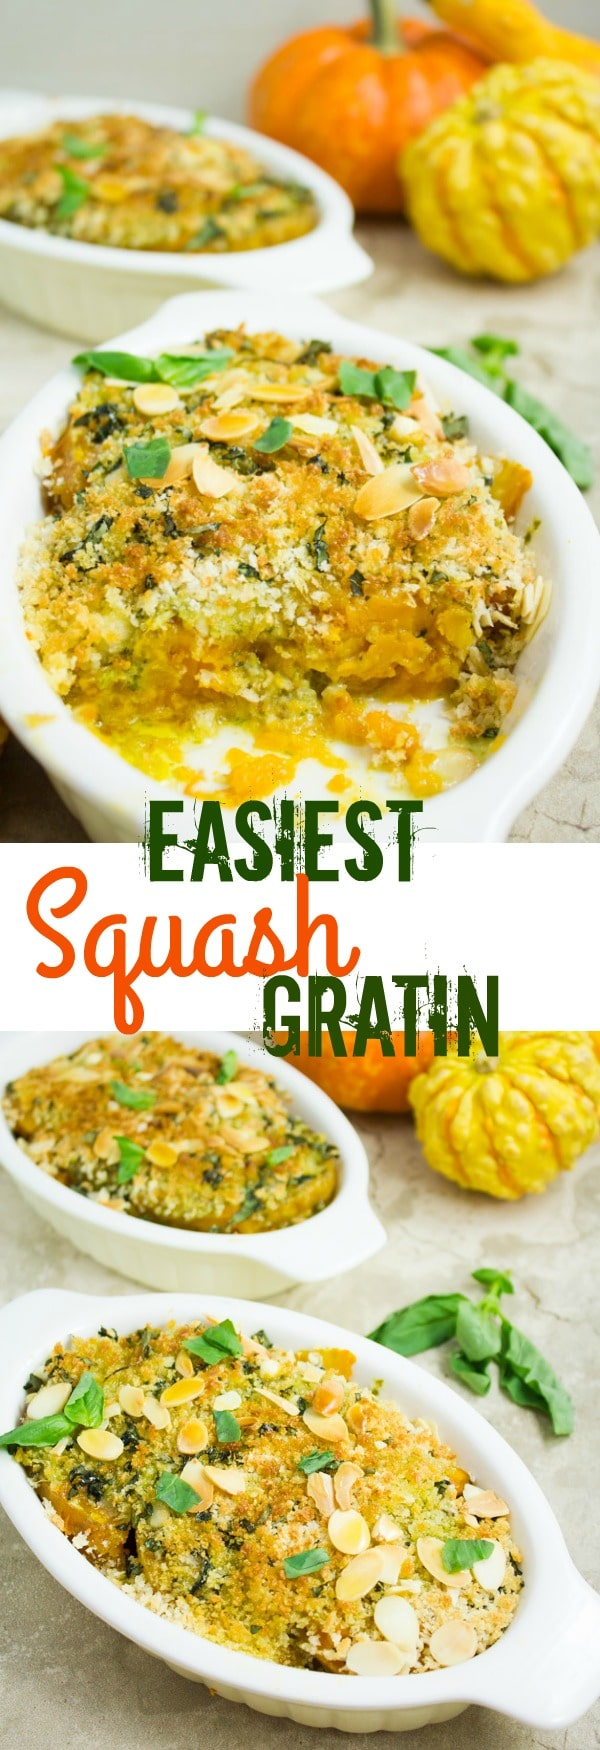 This easy Butternut Squash Gratin features tender, basil pesto flavored roasted butternut squash with a basil crunch almond topping. The perfect Thanksgiving side dish, ready in just 20 mins. #squashcasserole, #gratin, #roastedbutternutsquash